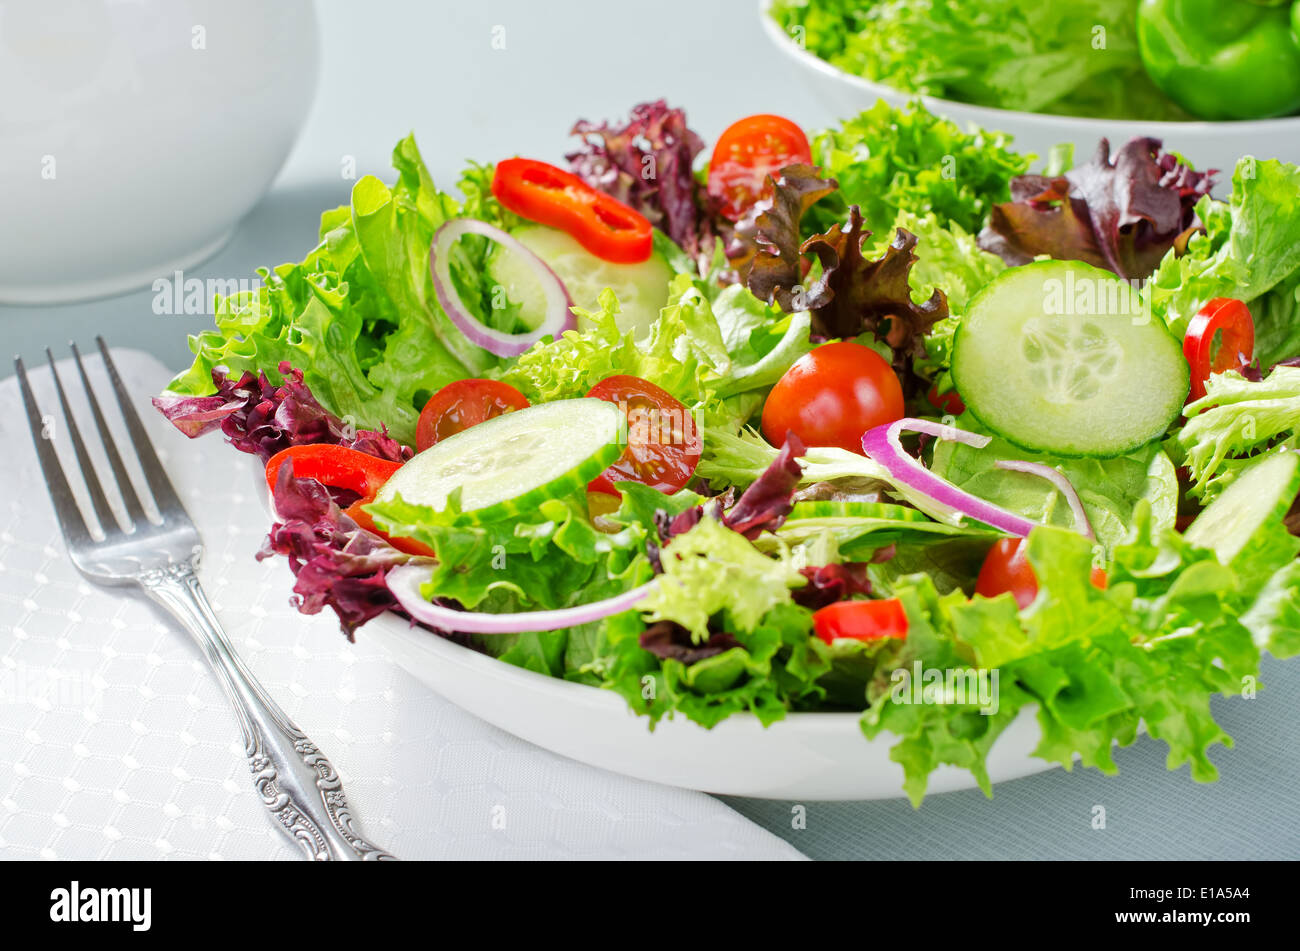 A mixed salad with lettuce, cucumber, tomatoes, red pepperm and red onion. - Stock Image